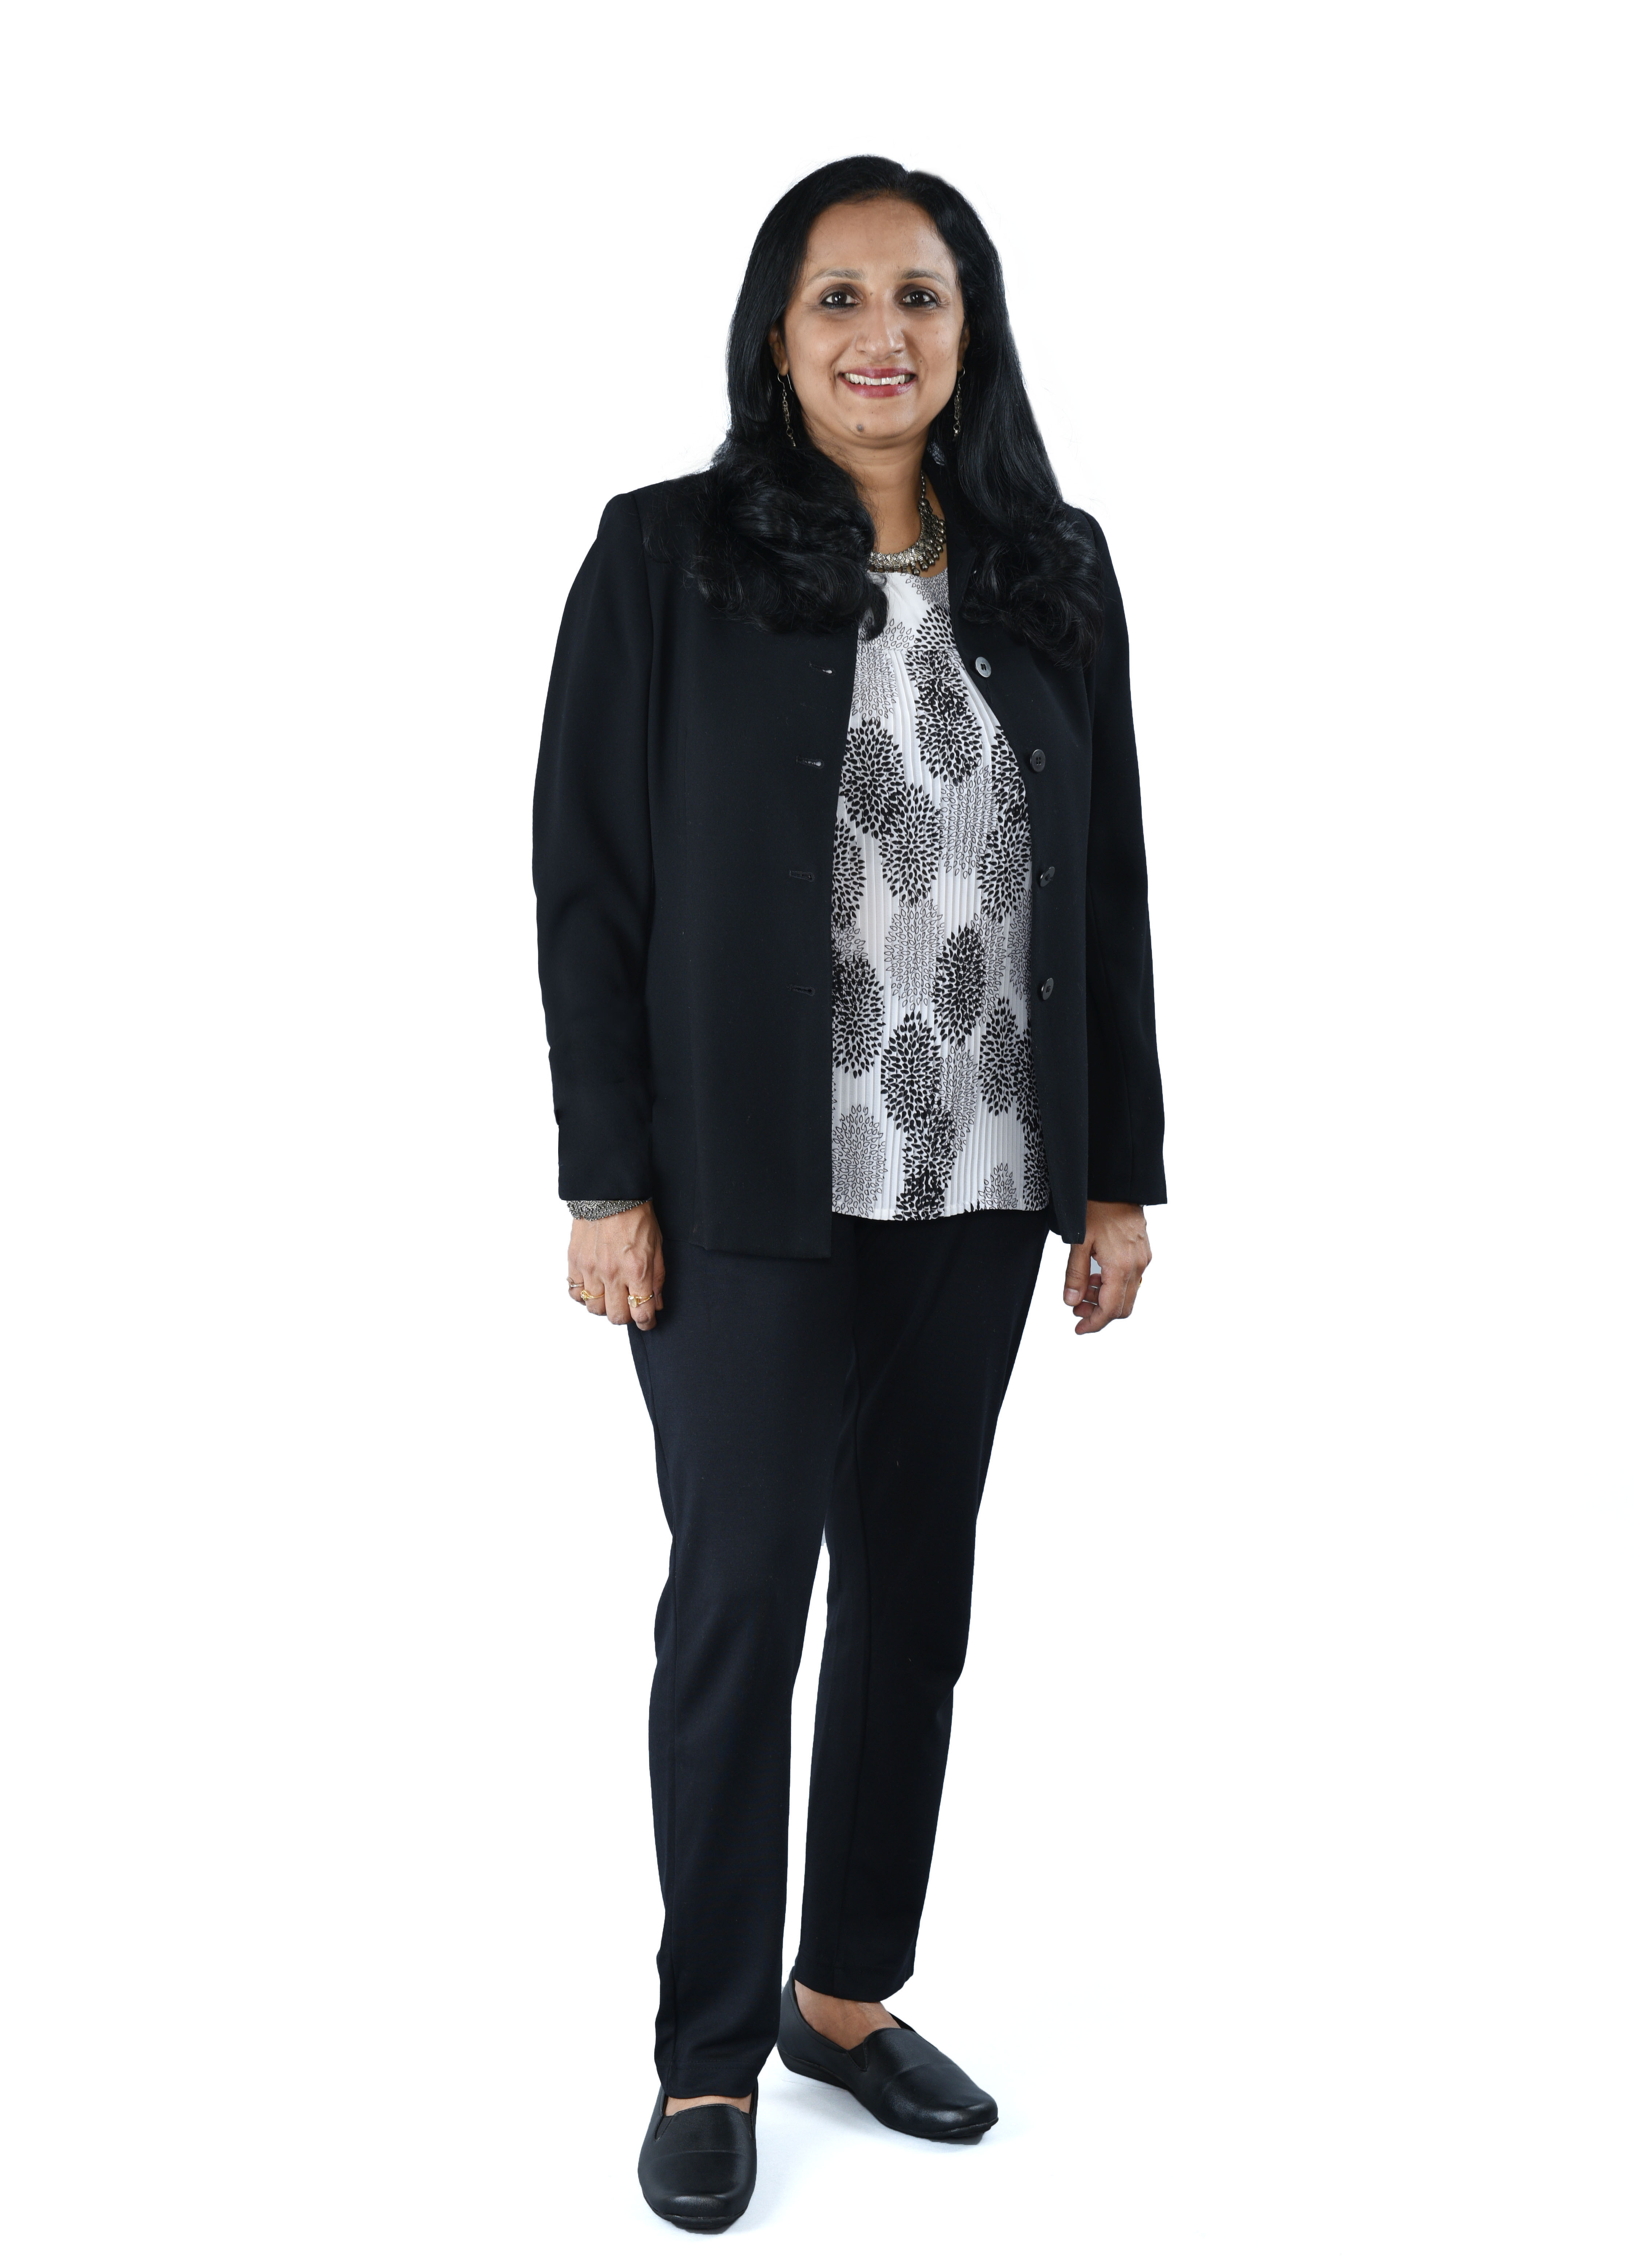 Sailaja Menon, The Psychiatry and Therapy Centre Dubai